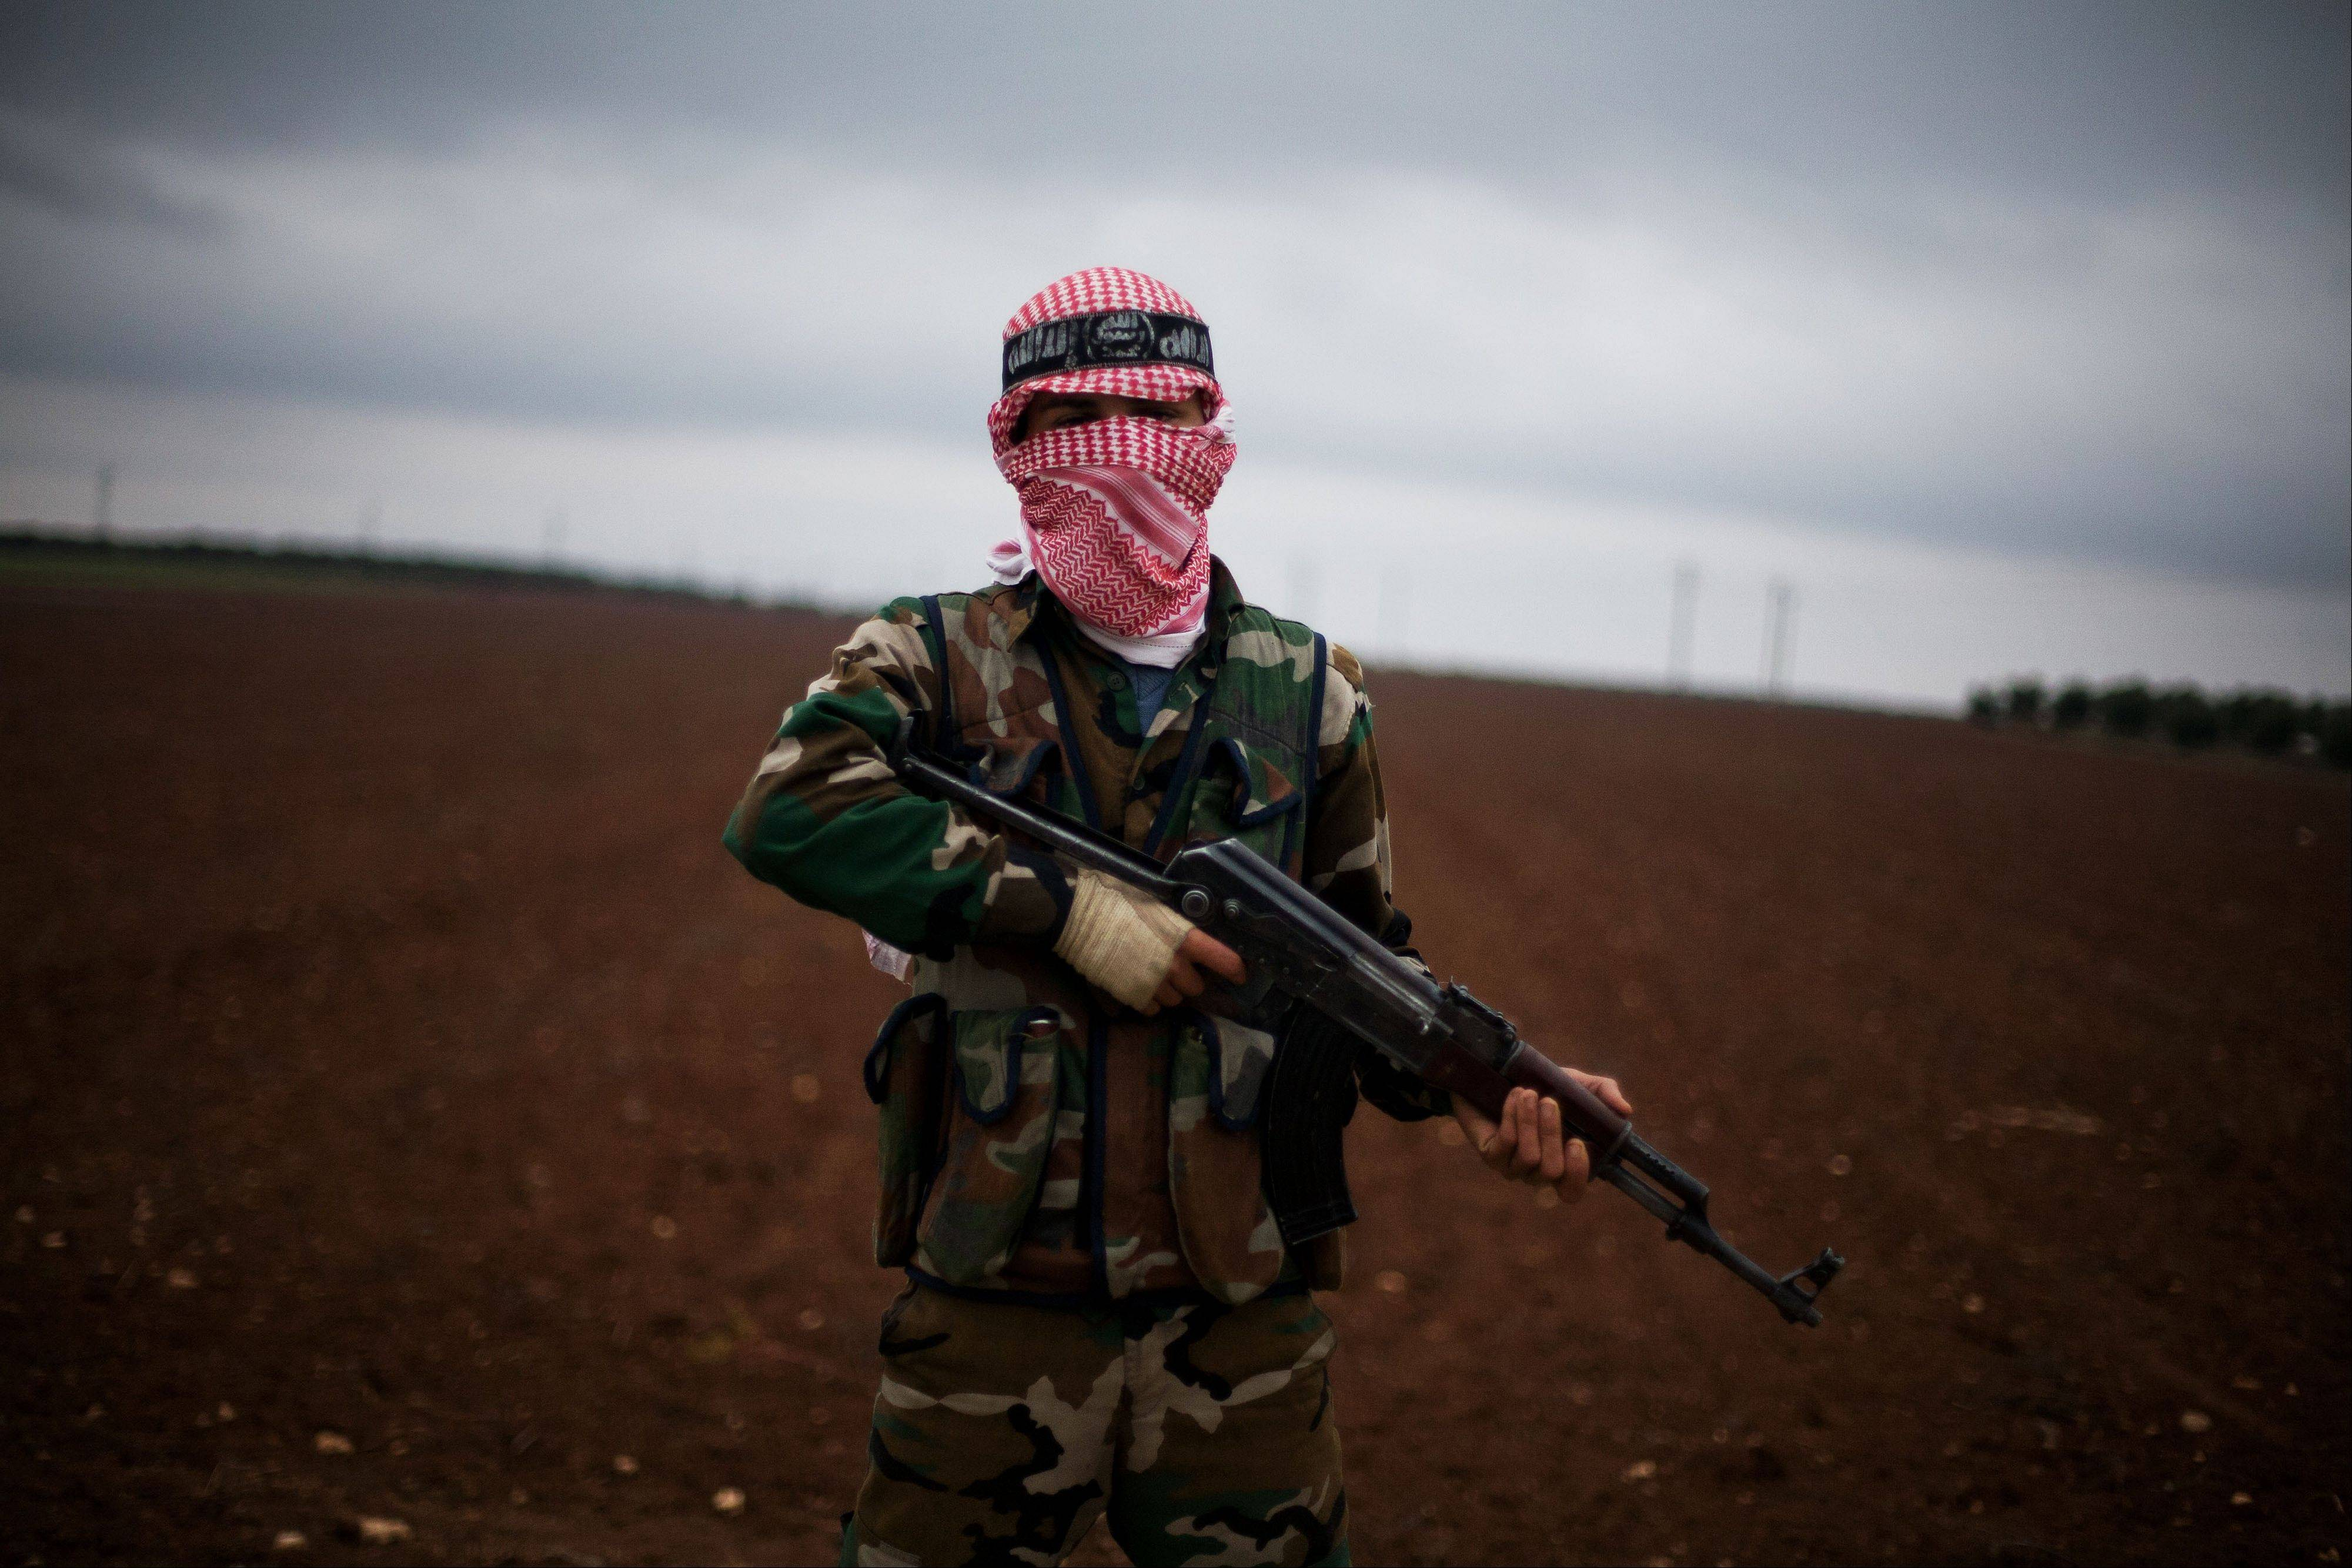 A Free Syrian Army fighter takes position close to a military base, near Azaz, Syria, Monday, Dec. 10, 2012. The gains by rebel forces came as the European Union denounced the Syrian conflict, whi